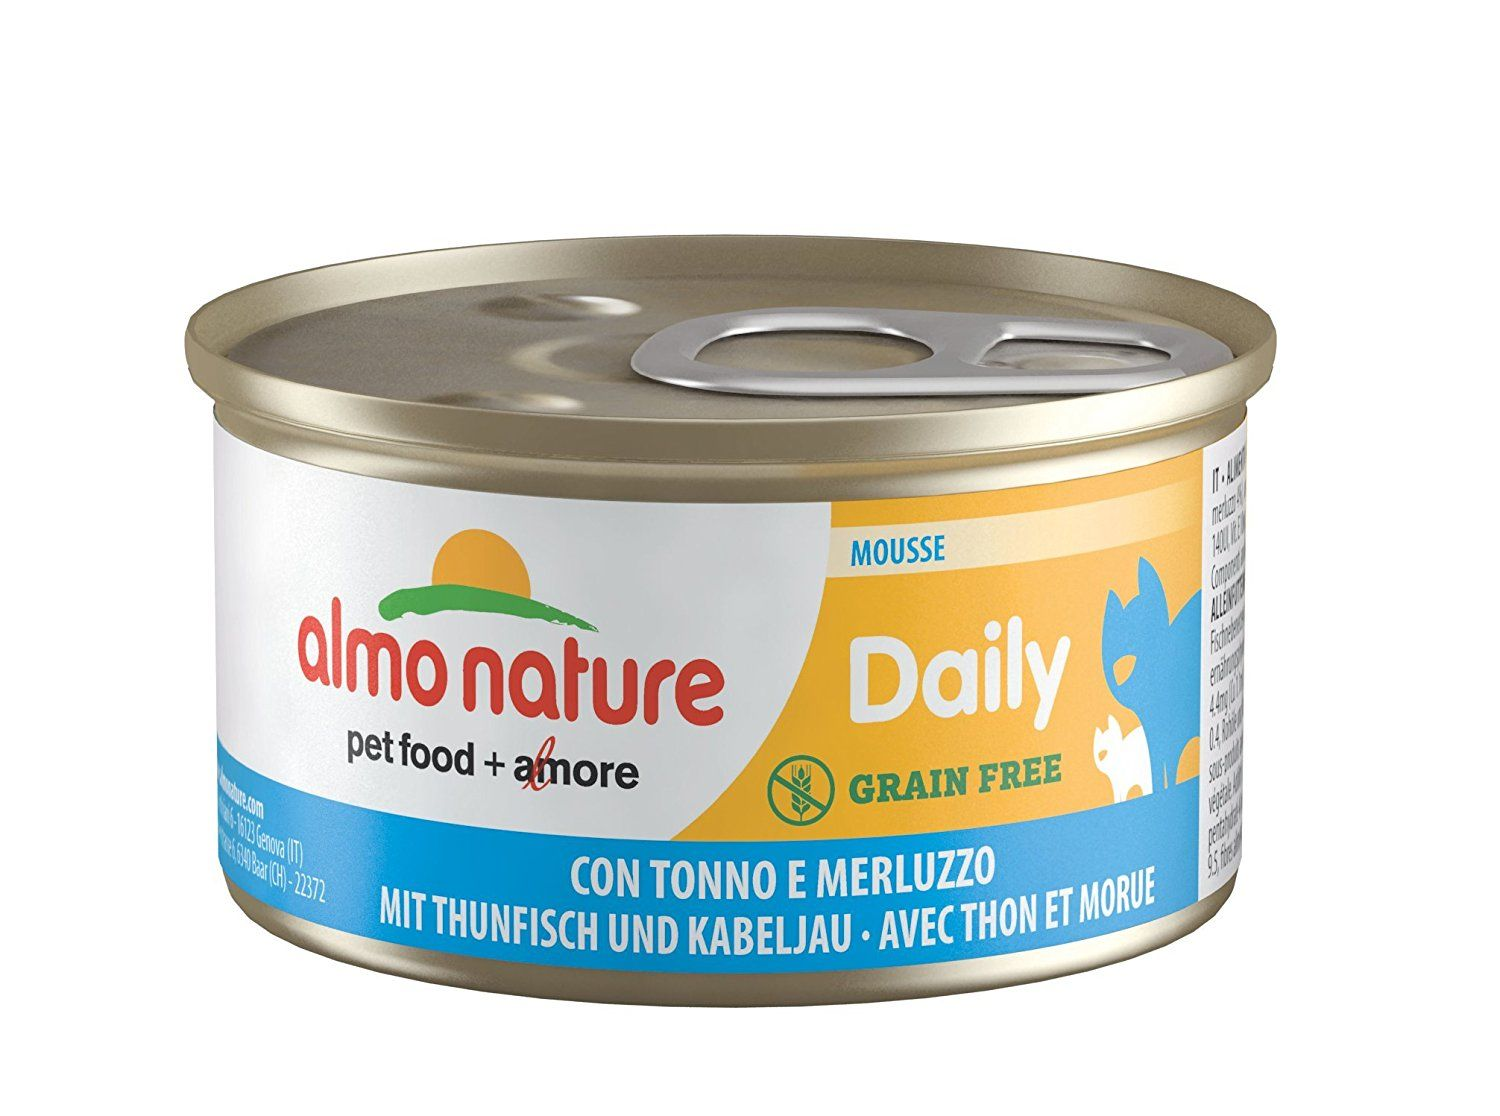 Almo Nature Daily Mousse With Tuna And Cod Grain Free Pack Of 24 X 85g Tins You Can Get More Details By Clicking On The Image C Grain Free Almo Mousse